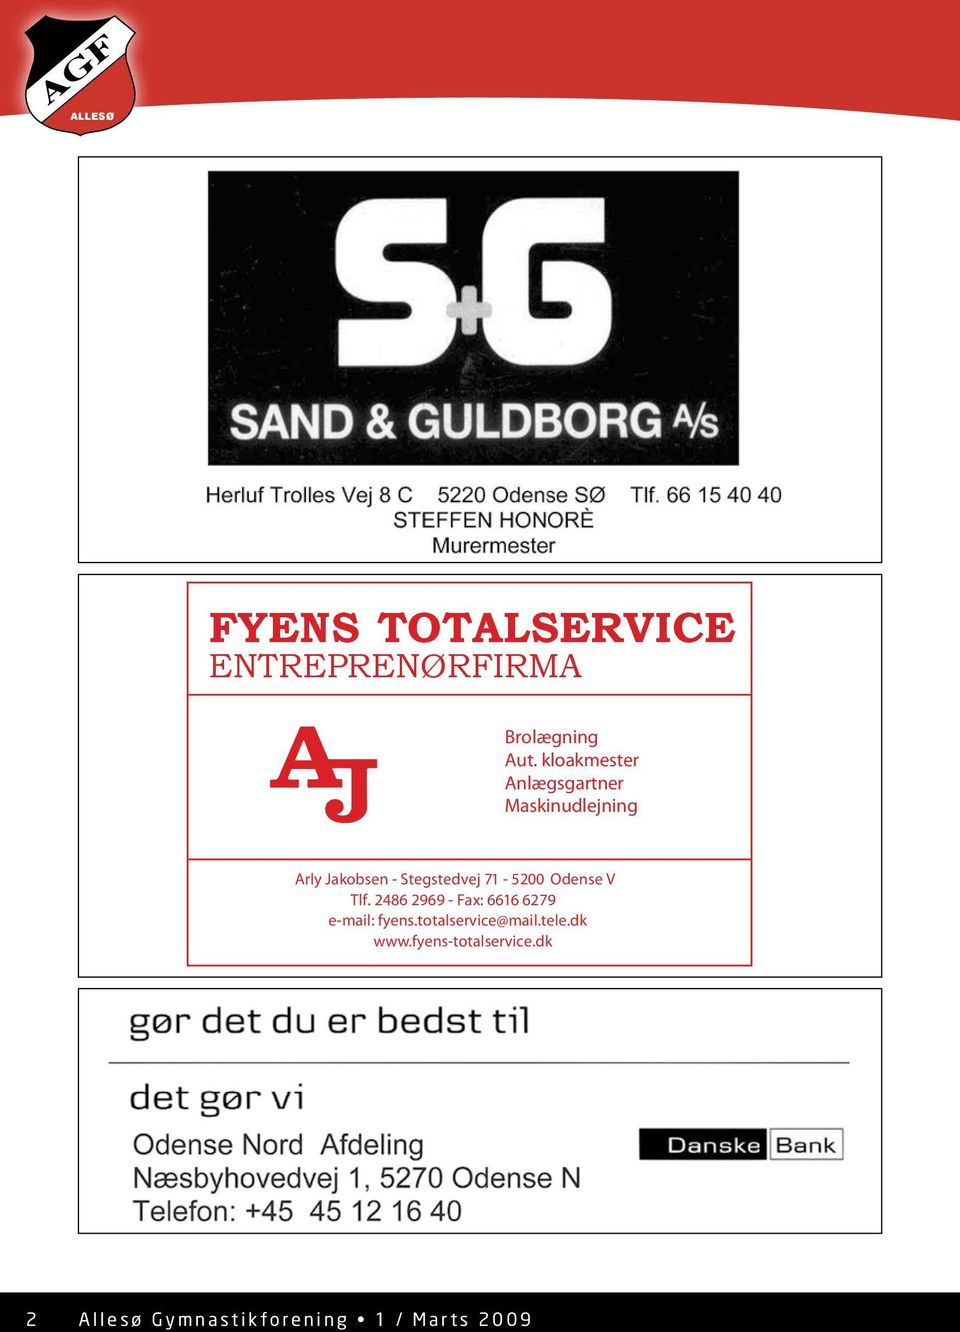 Odense V Tlf. 2486 2969 - Fax: 6616 6279 e-mail: fyens.totalservice@mail.tele.